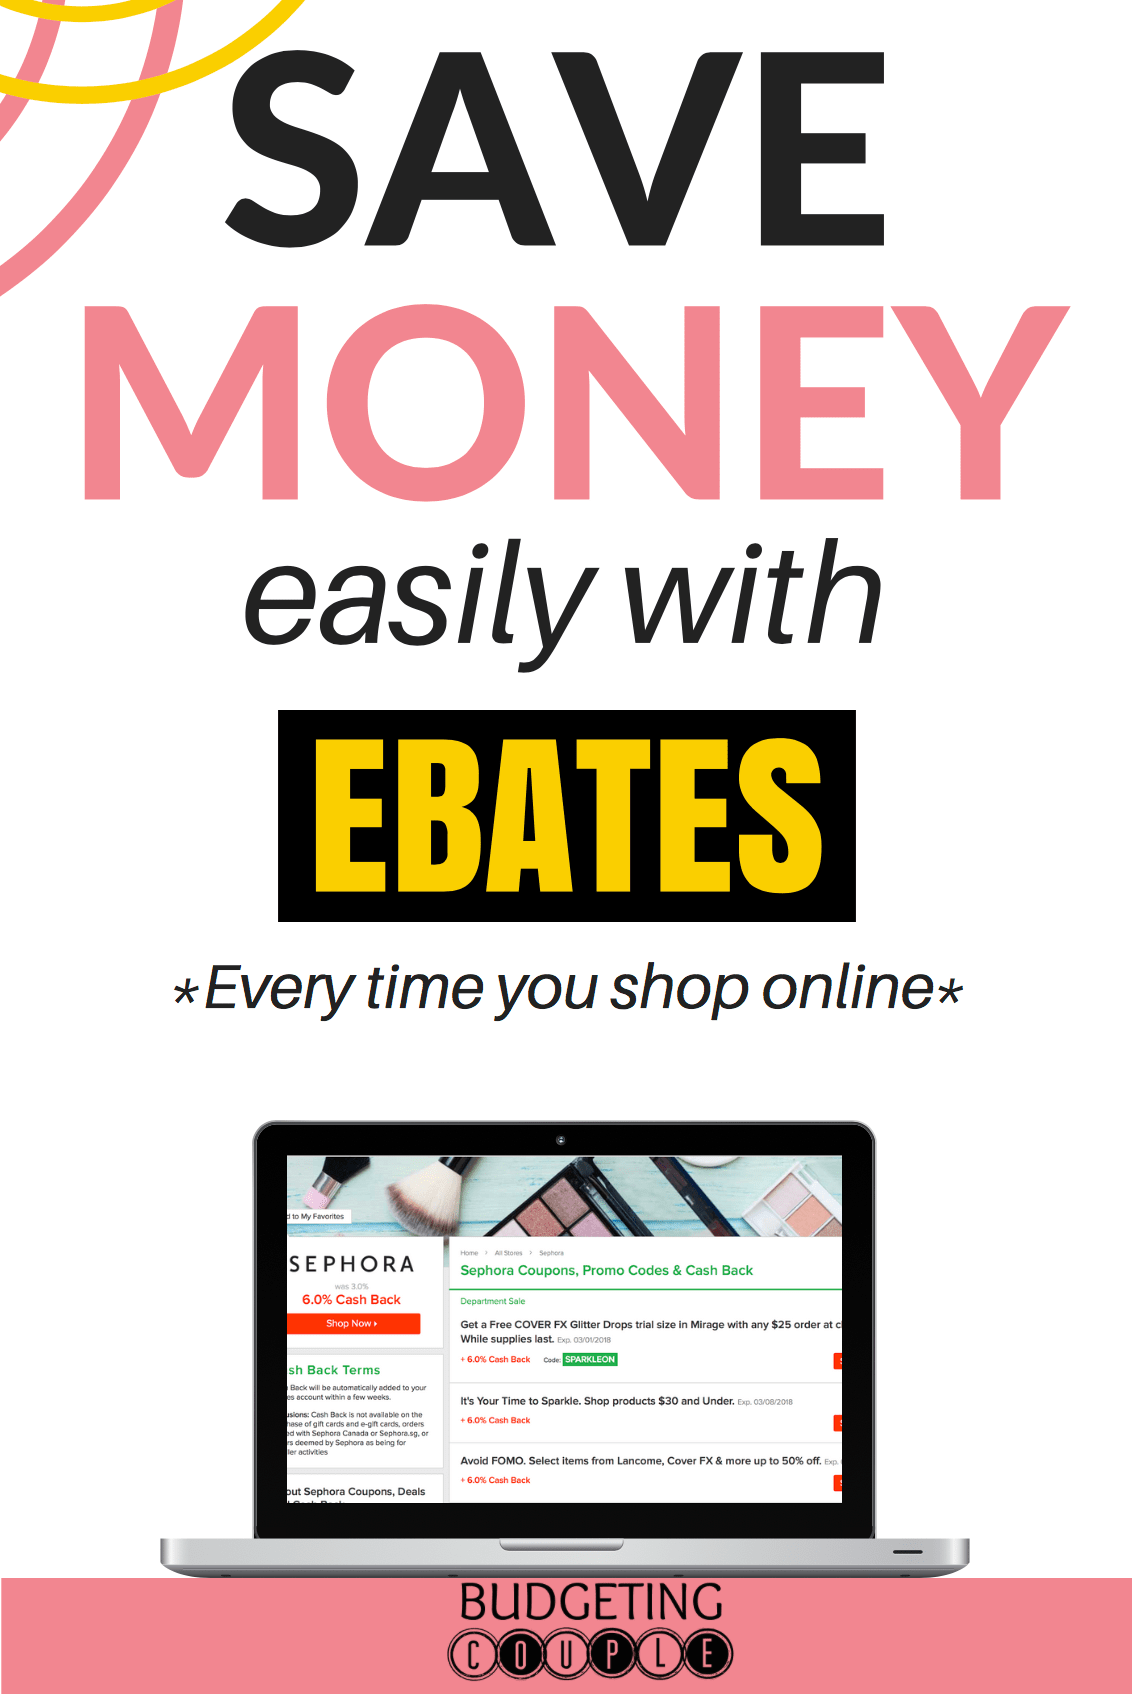 do i have to shop online to use ebates